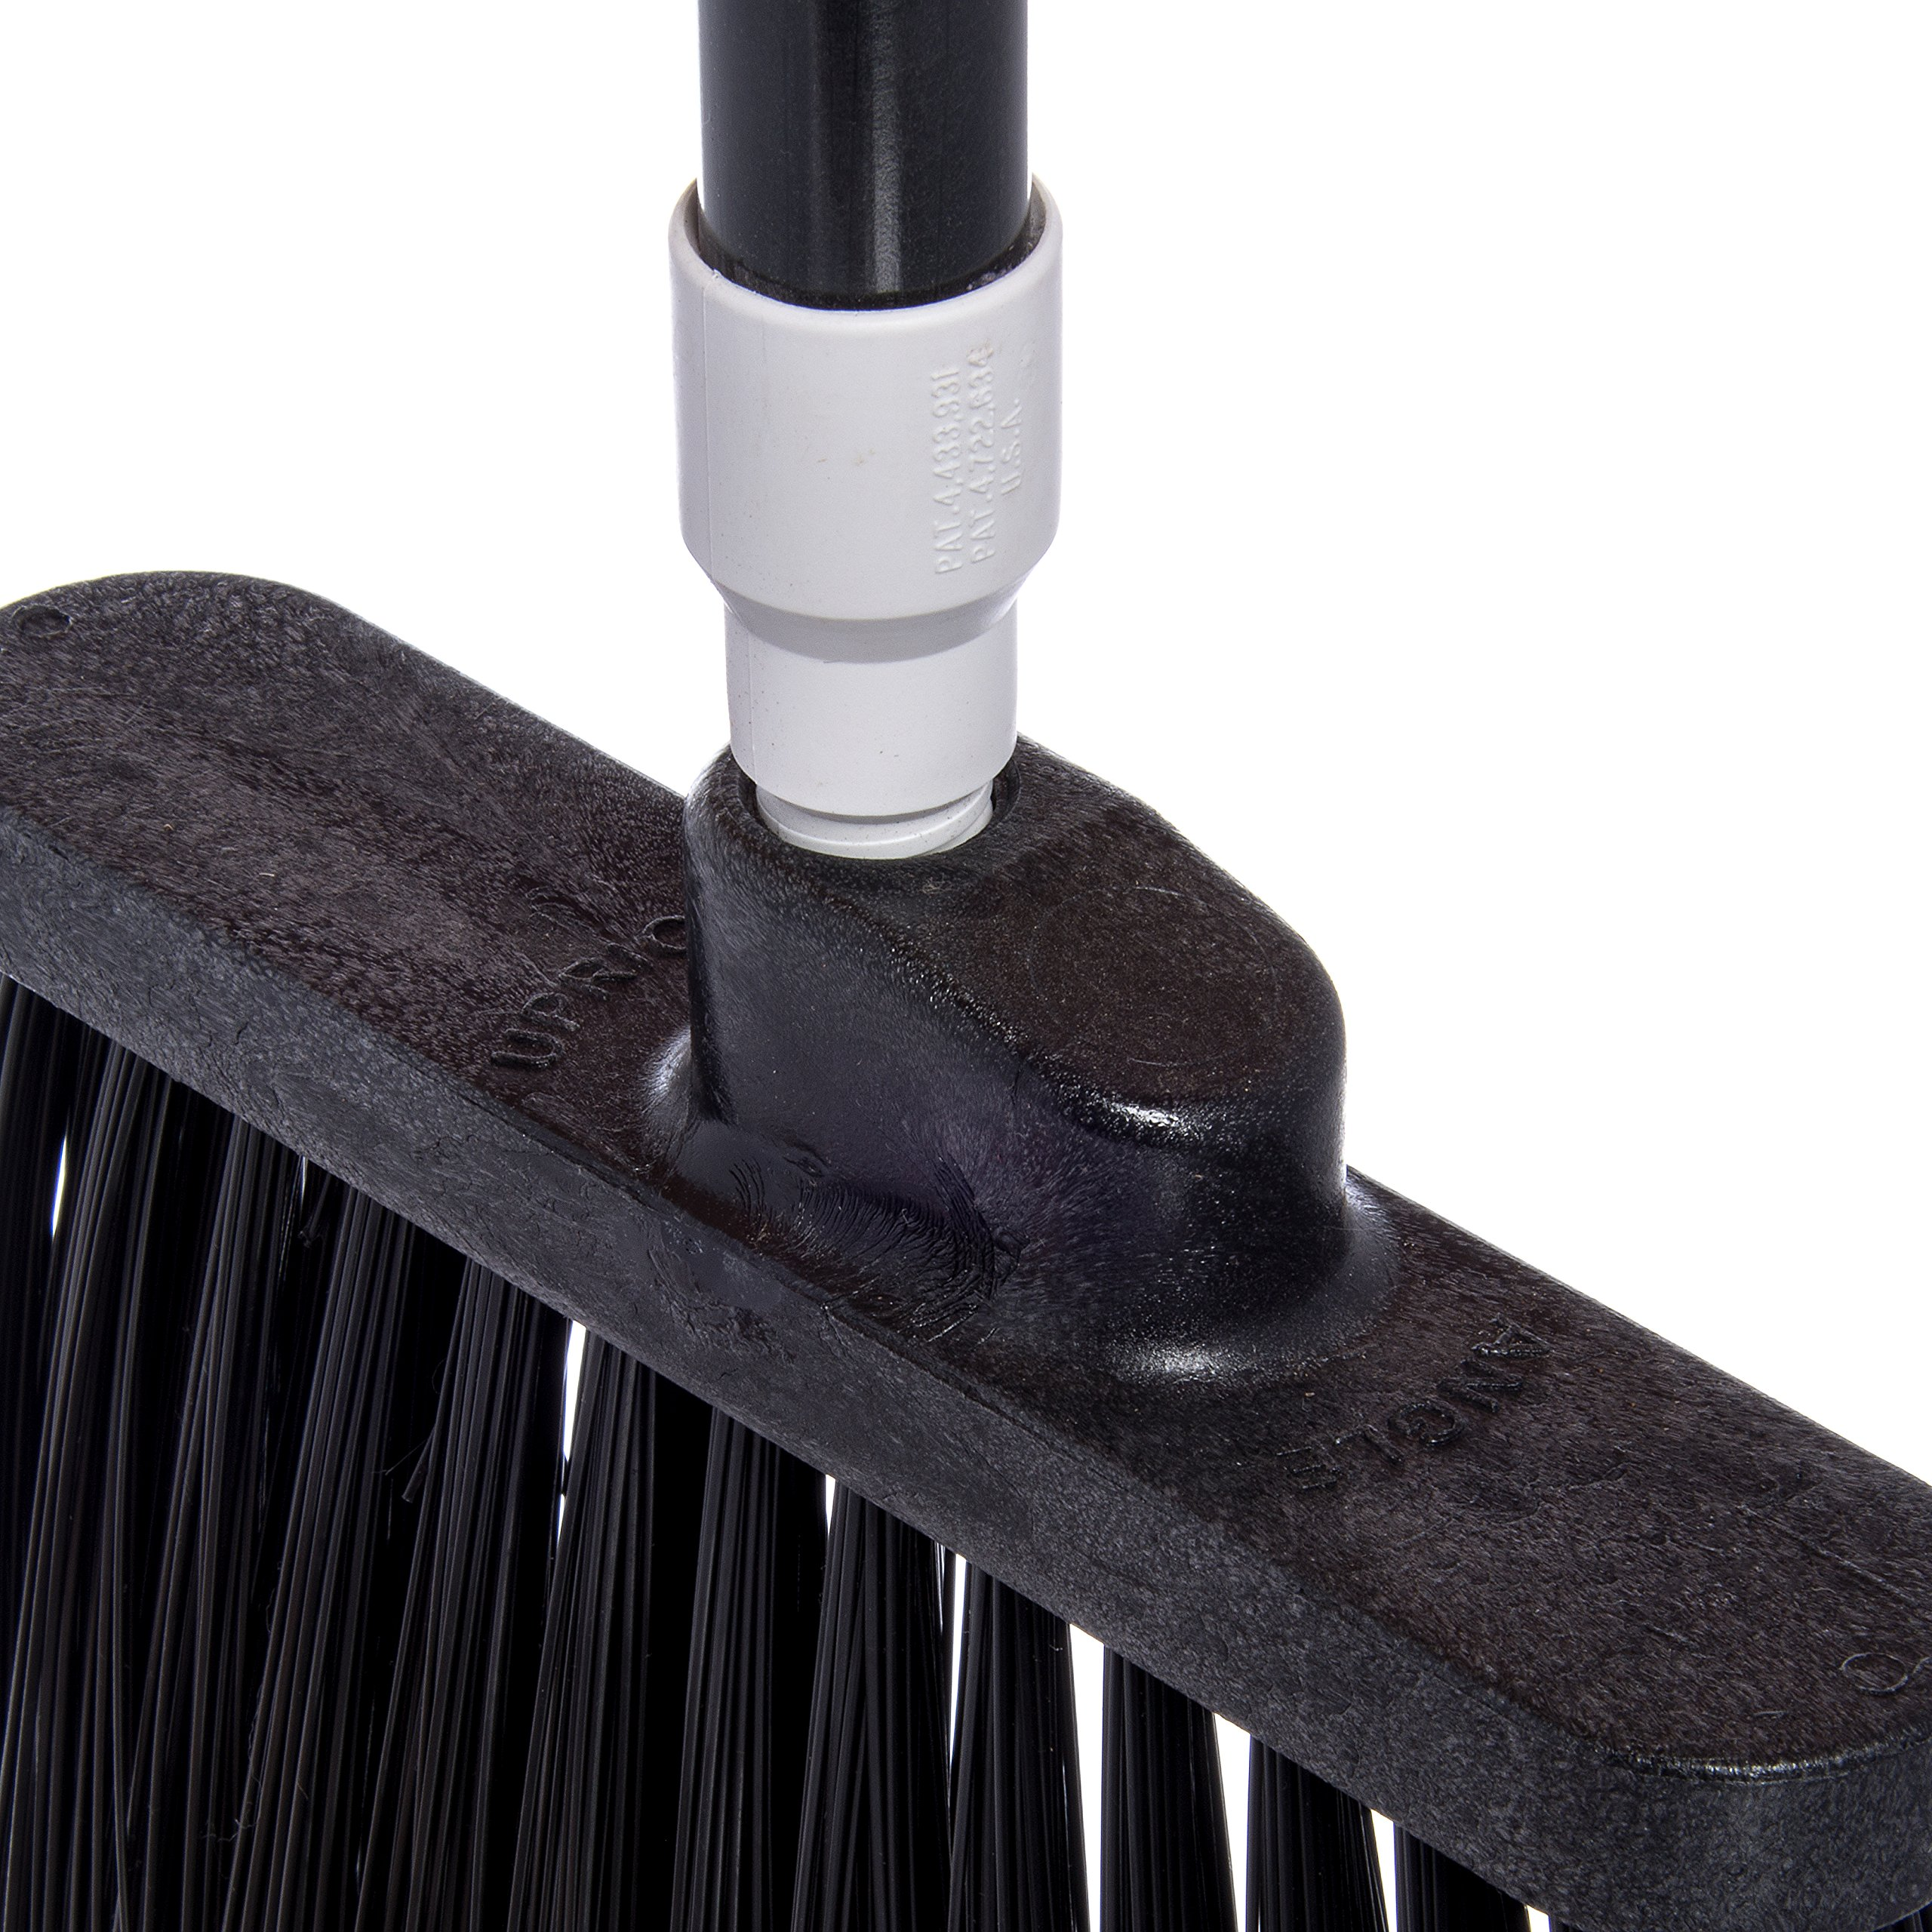 Carlisle 3686703 Duo-Sweep Medium Duty Flagged Angle Broom Head, Polypropylene Bristle, 8'' Overall Length x 12'' Width, Black (Case of 12) by Carlisle (Image #4)